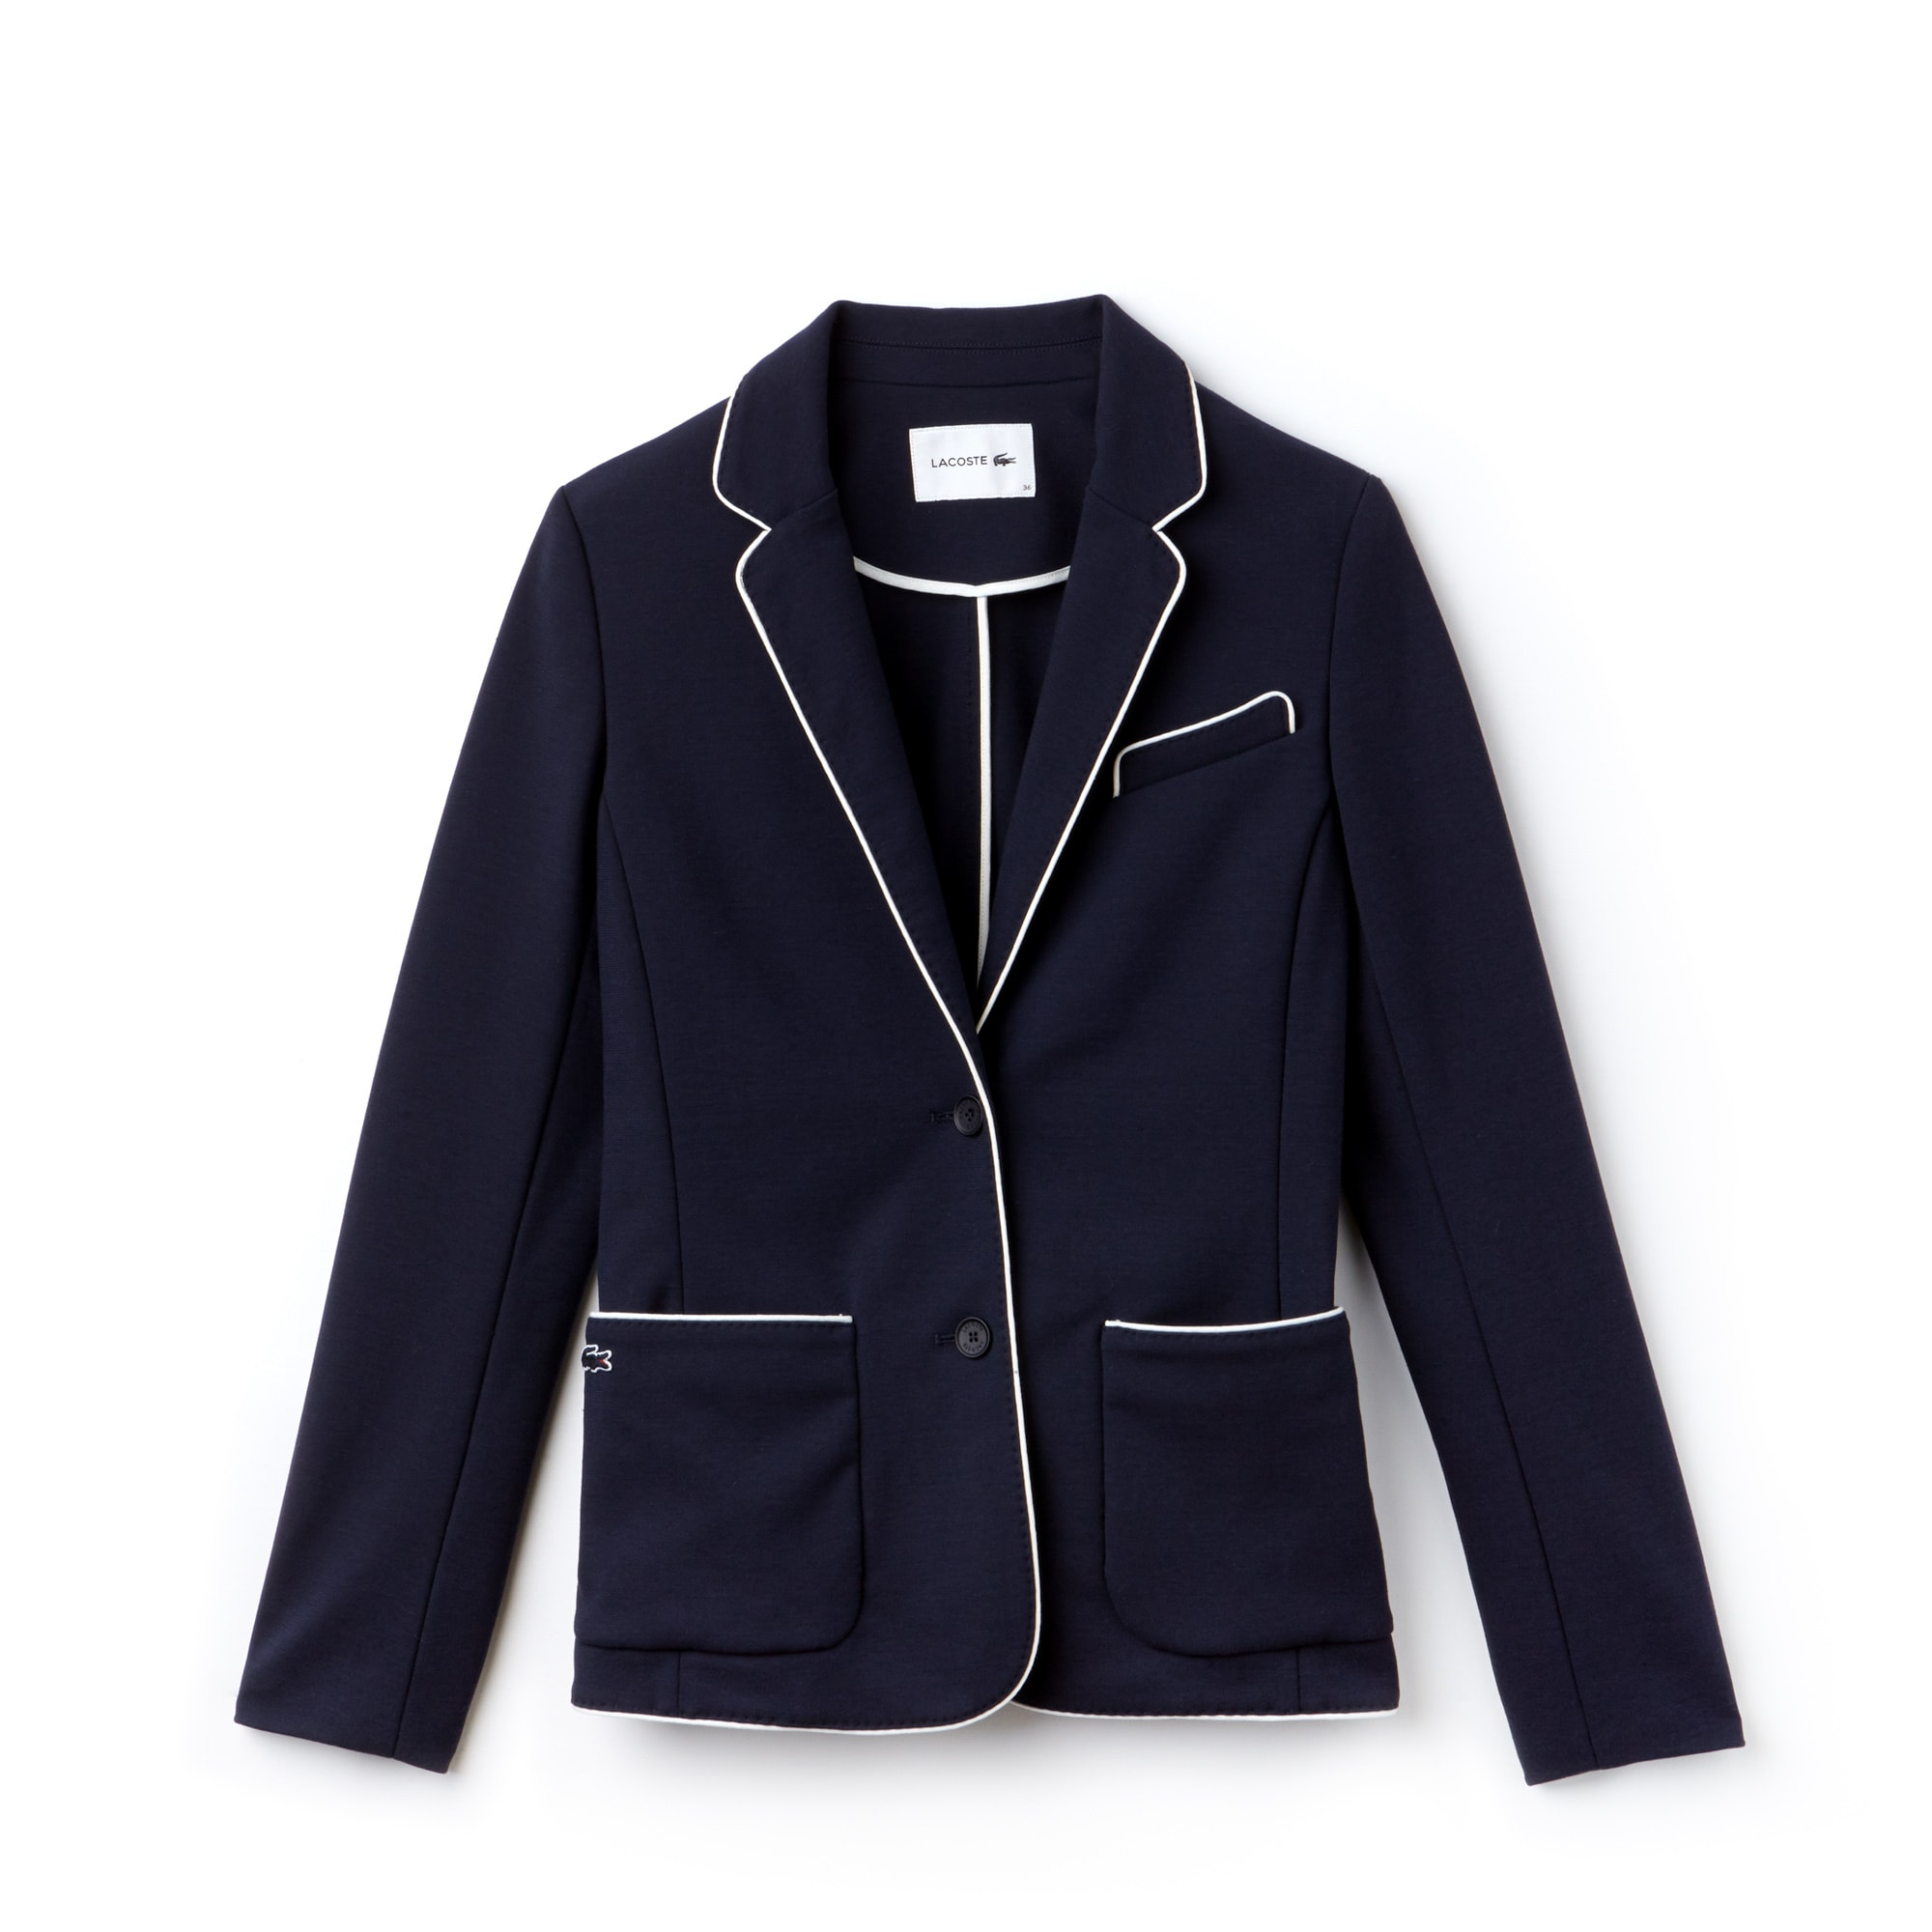 Women's Piped Cotton Crepe Interlock Blazer